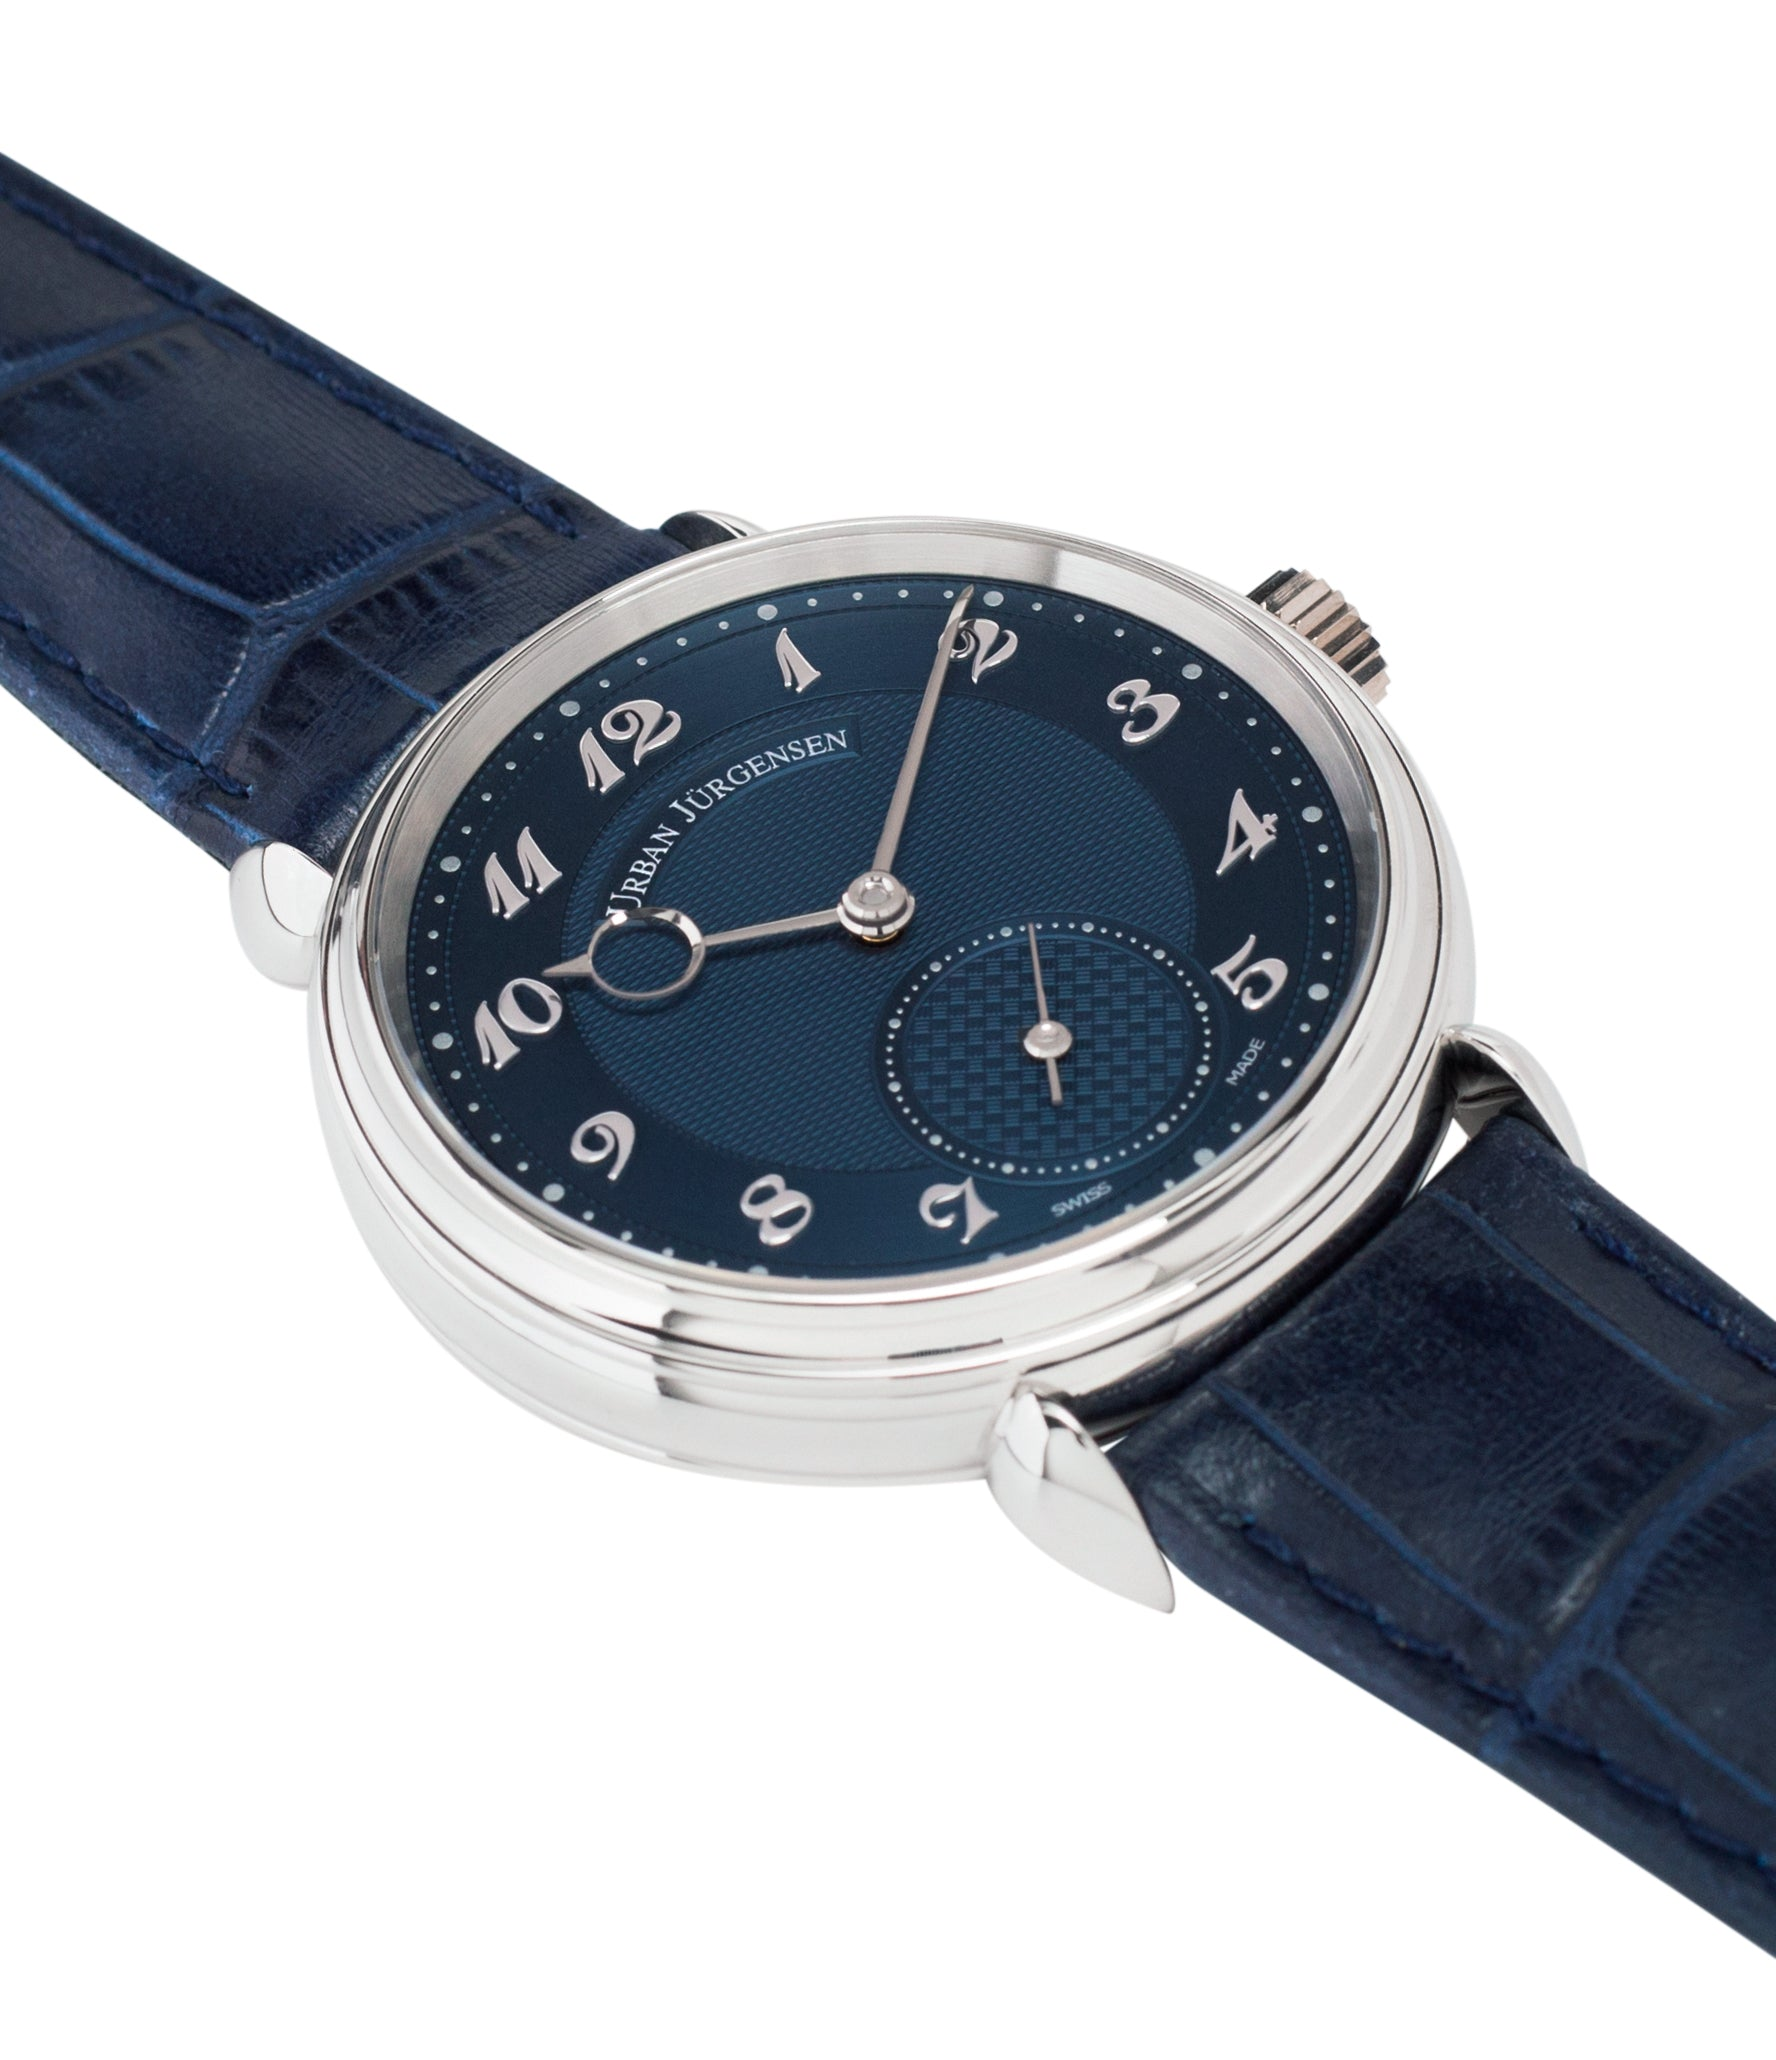 selling Urban Jurgensen 1140 PT Blue dial watch online at A Collected Man London independent watchmaker specialist authorised retailer in the UK